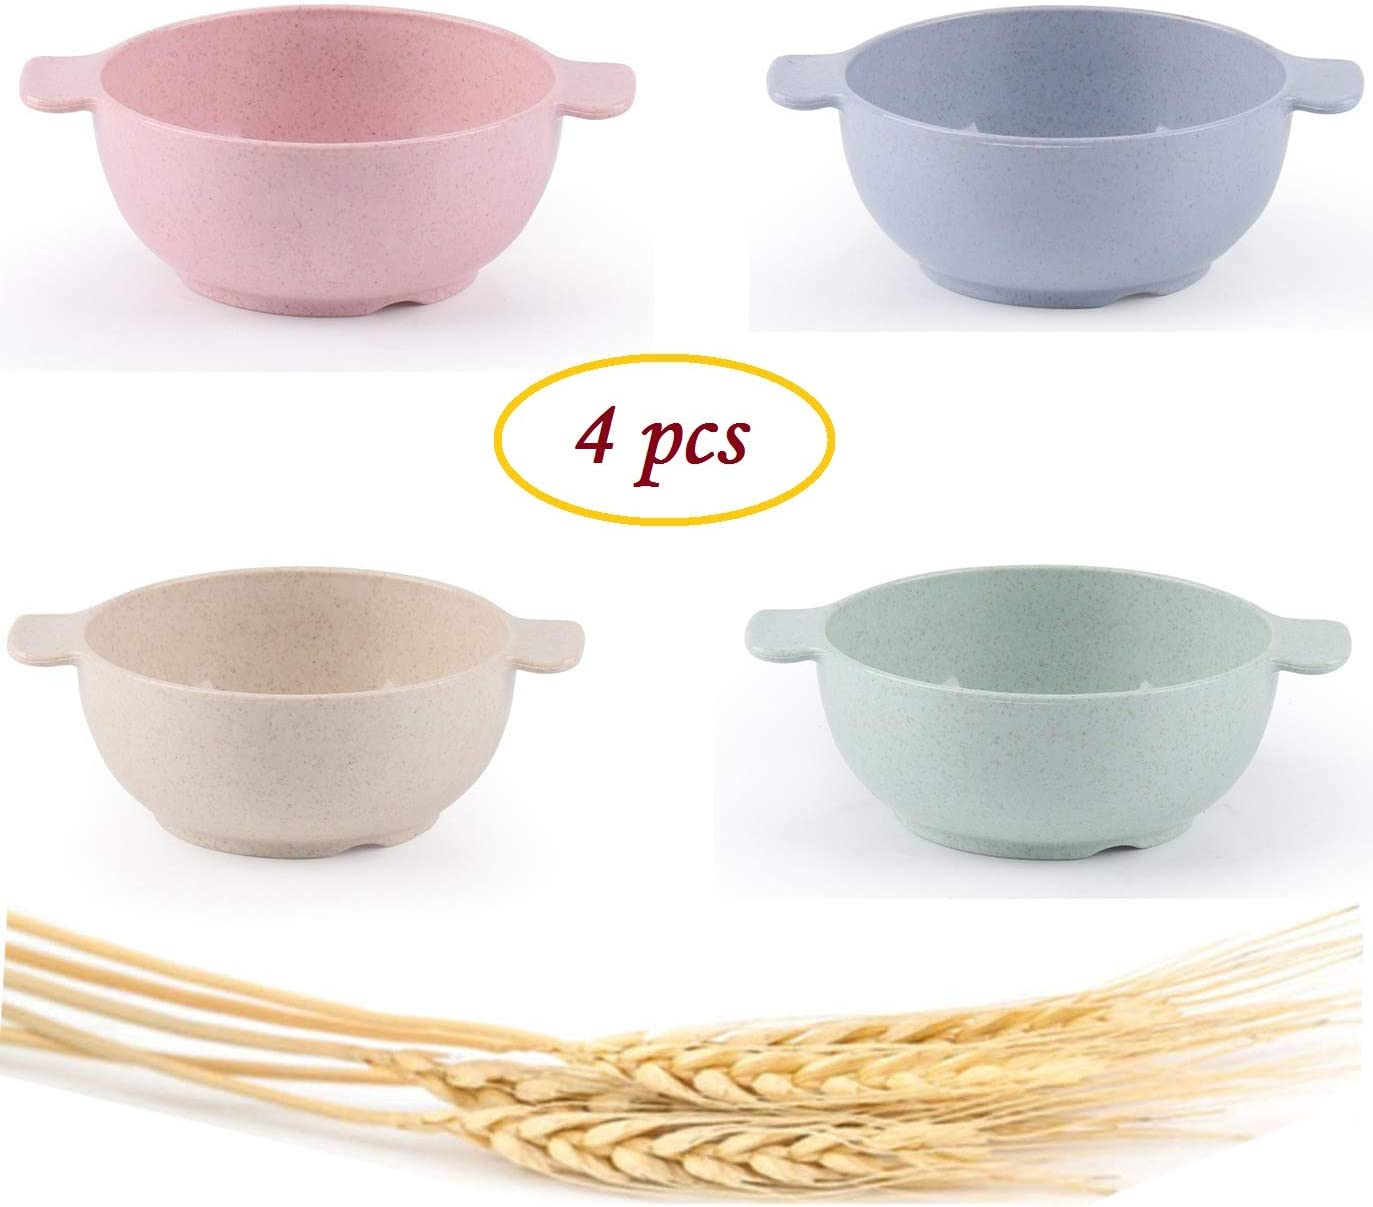 Choary Lightweight & Unbreakable Wheat Straw Bowls for baby child, Set of 4 Dishwasher Microwave Safe bowls, Non Toxic, Eco Friendly & Reusable Snack small bowls.